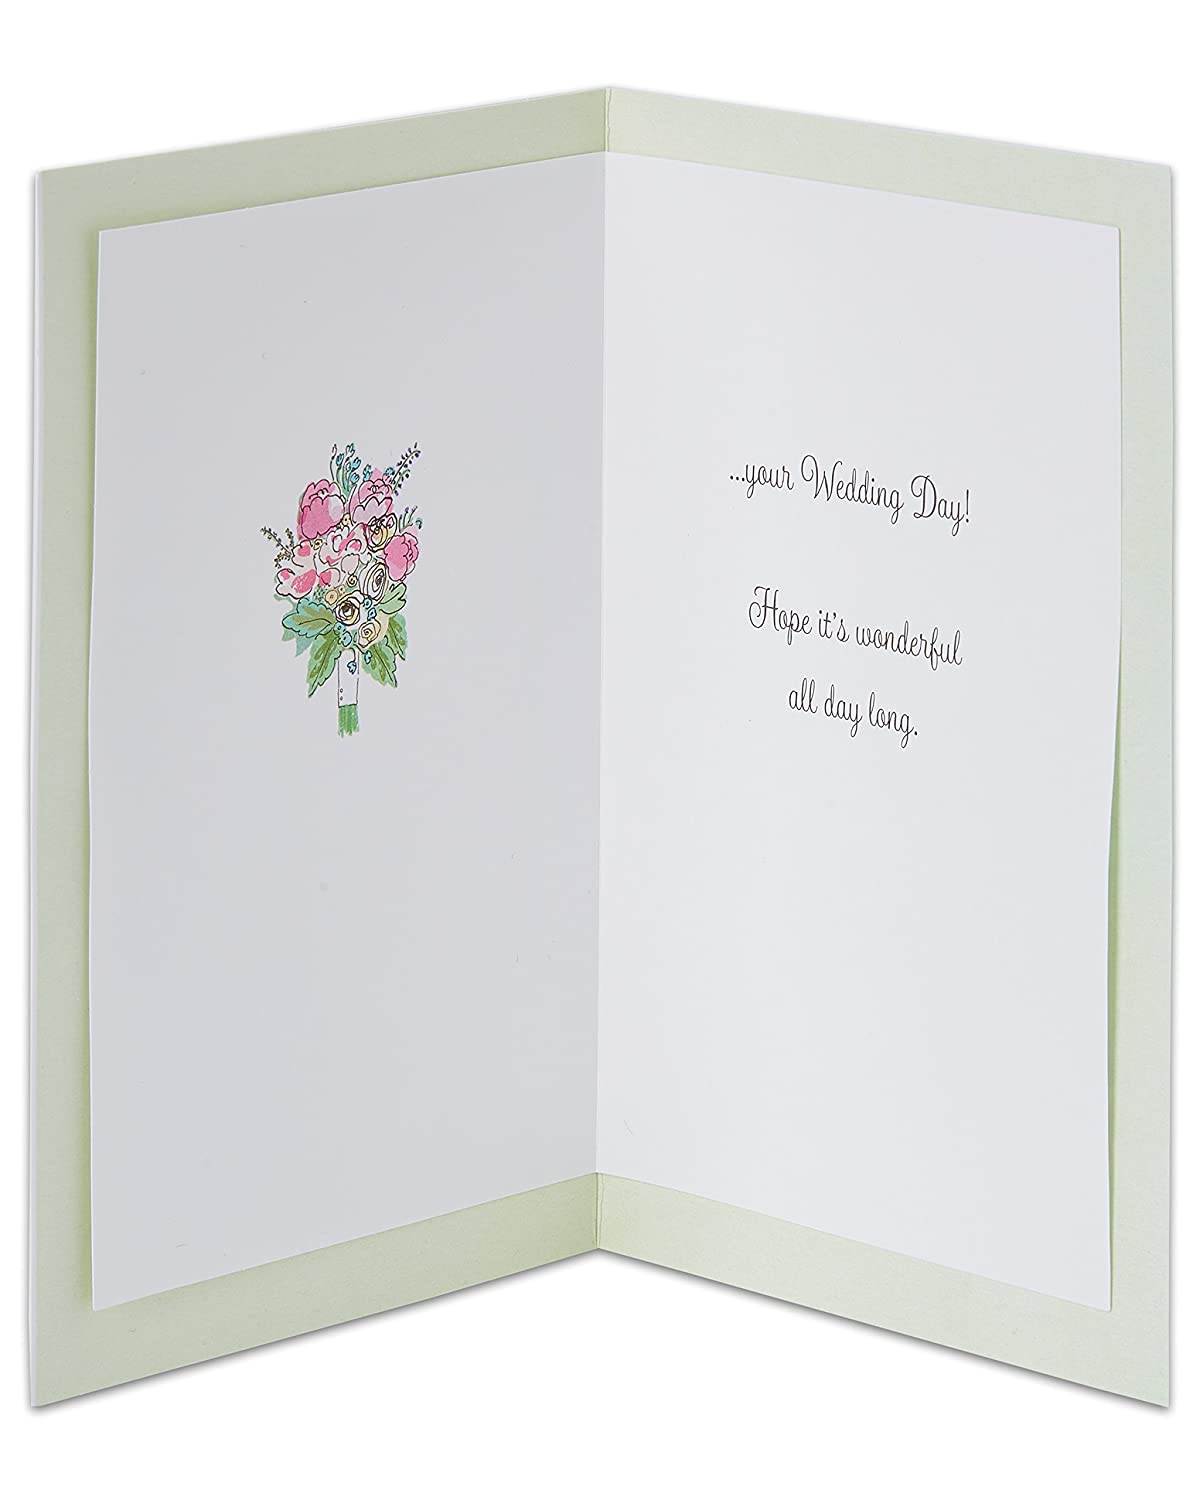 American Greetings Happily Ever After Wedding Card With Glitter 7466088